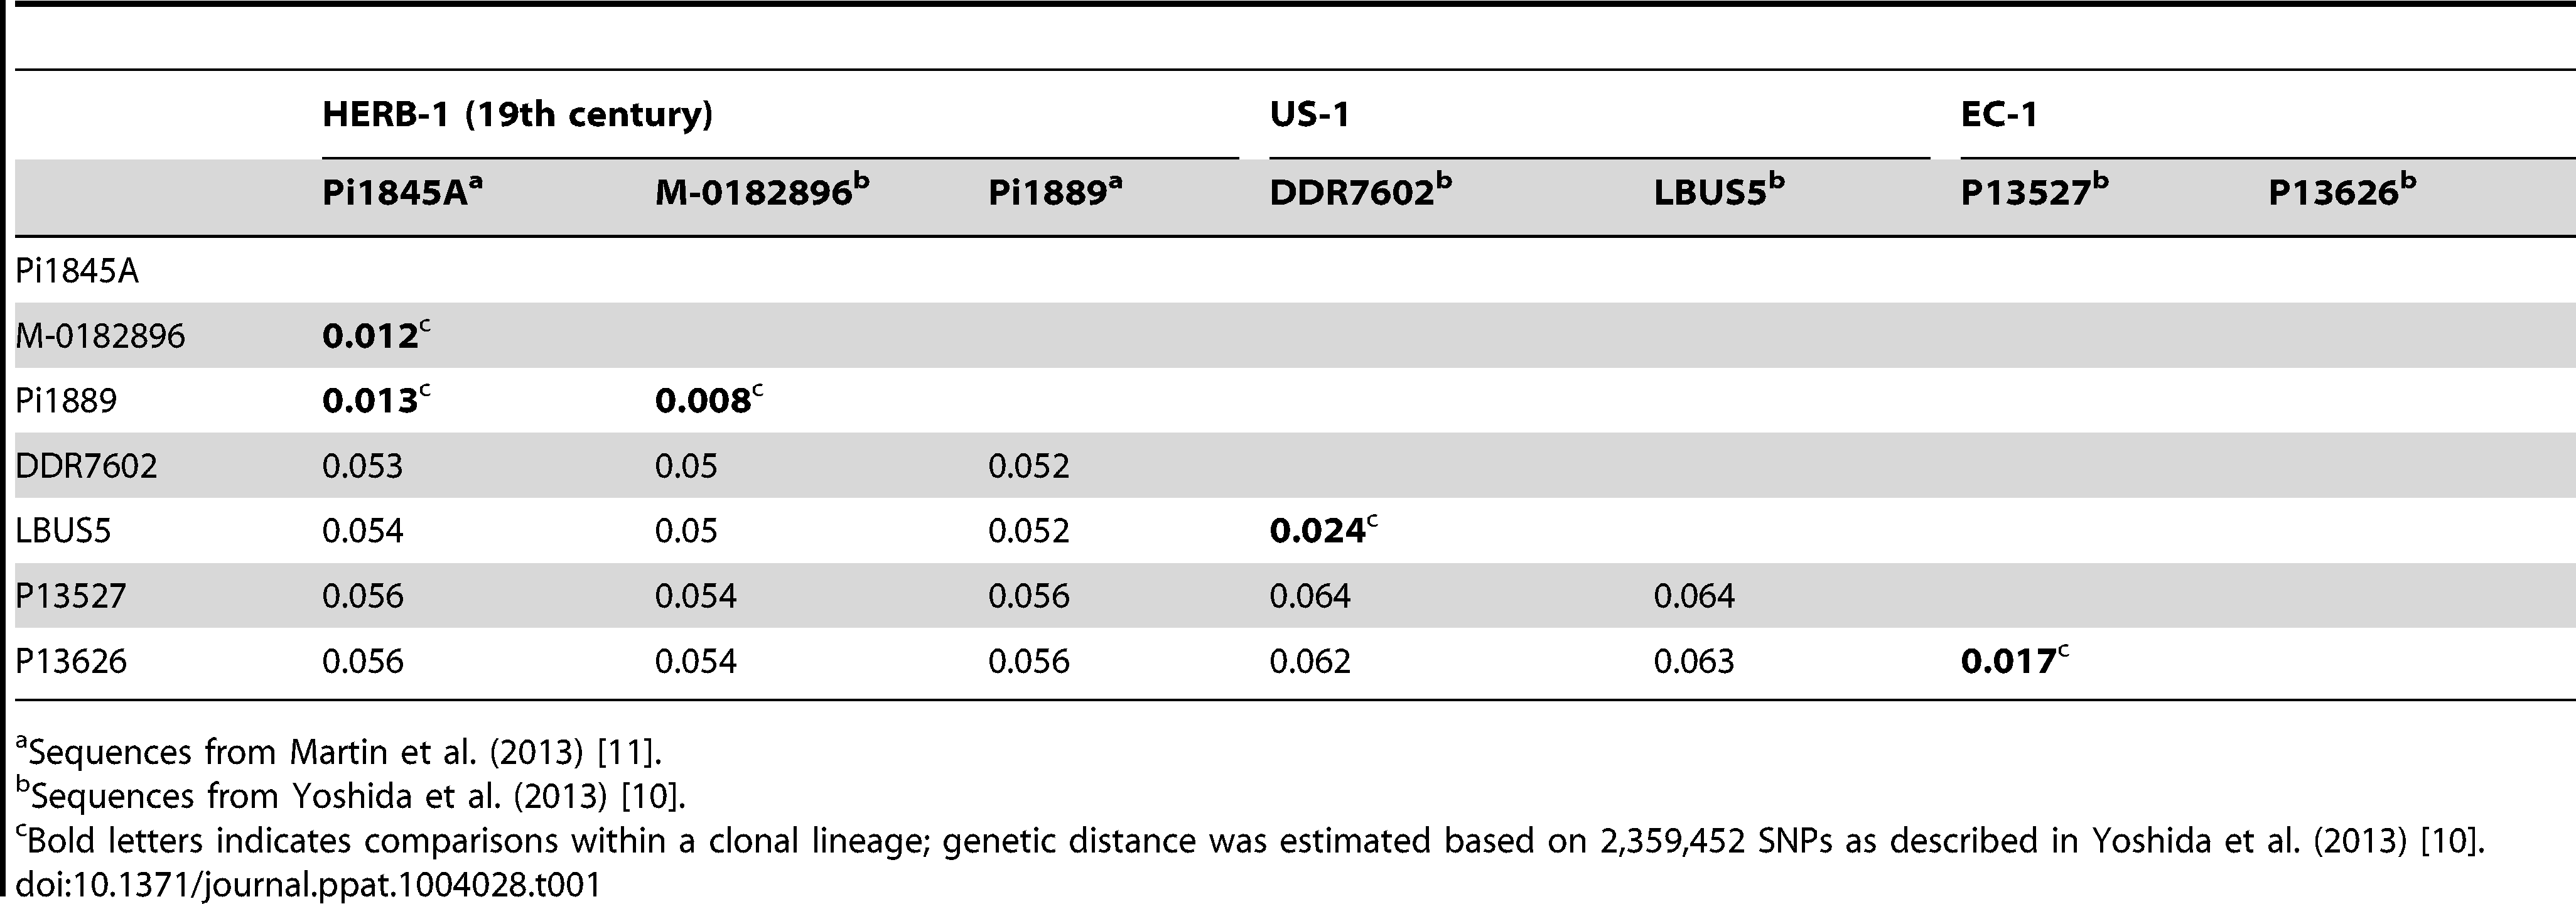 Genetic distance between individual isolates of clonal lineages HERB-1, US-1, and EC-1 of <i>P. infestans</i>.